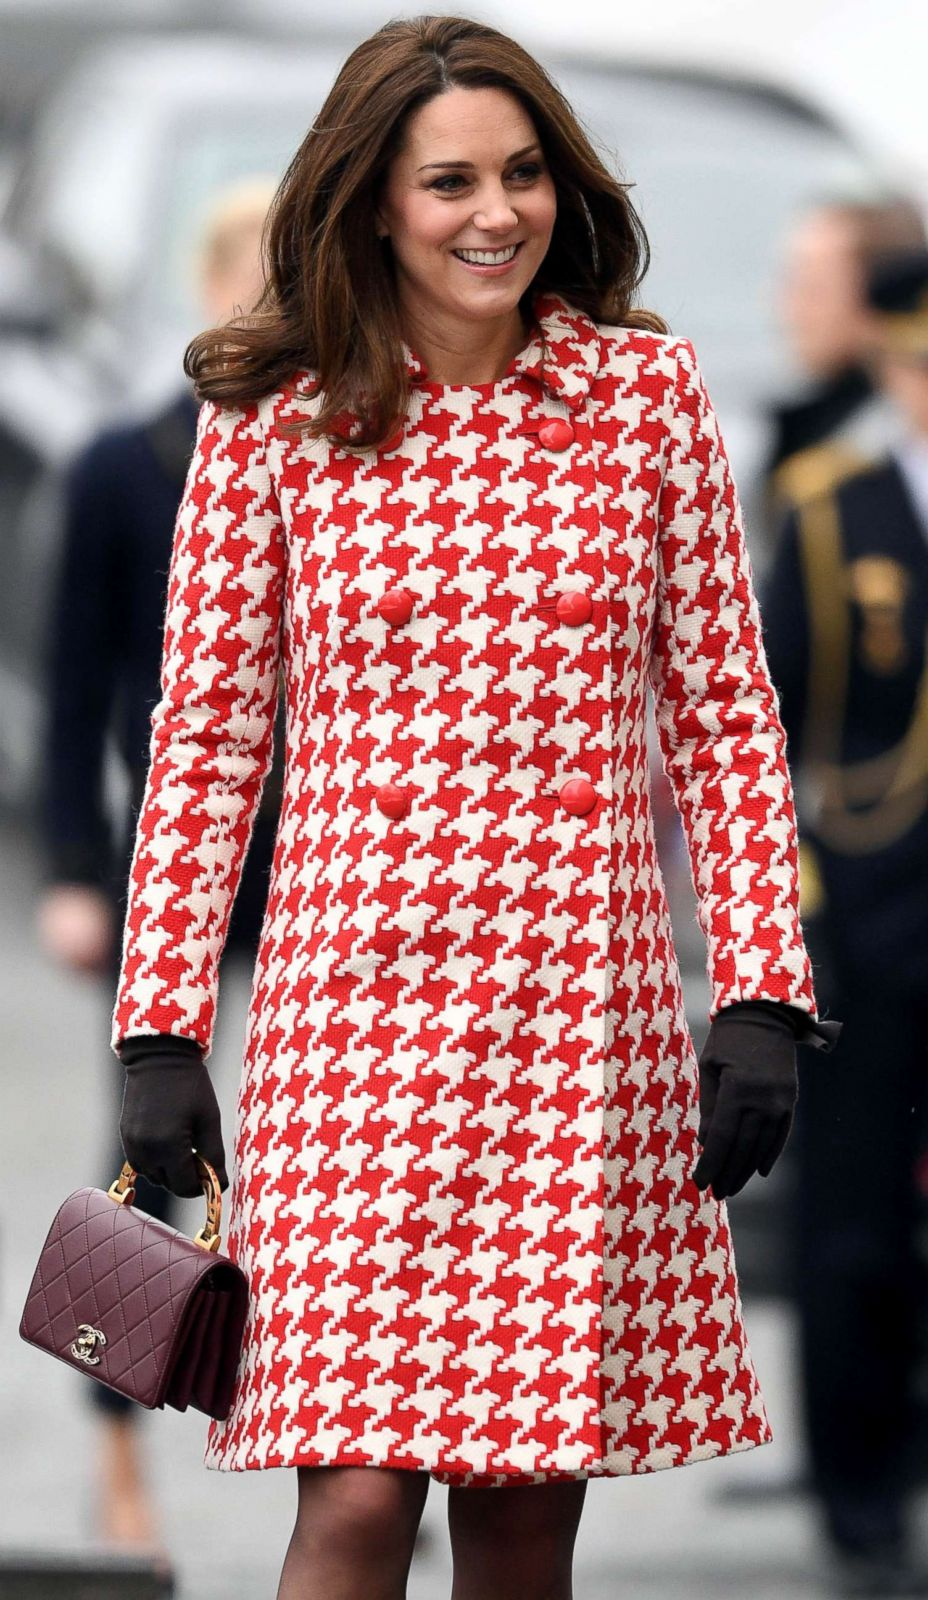 Duchess Kate Steps Out in Hot Pink Picture | The life and times of ...